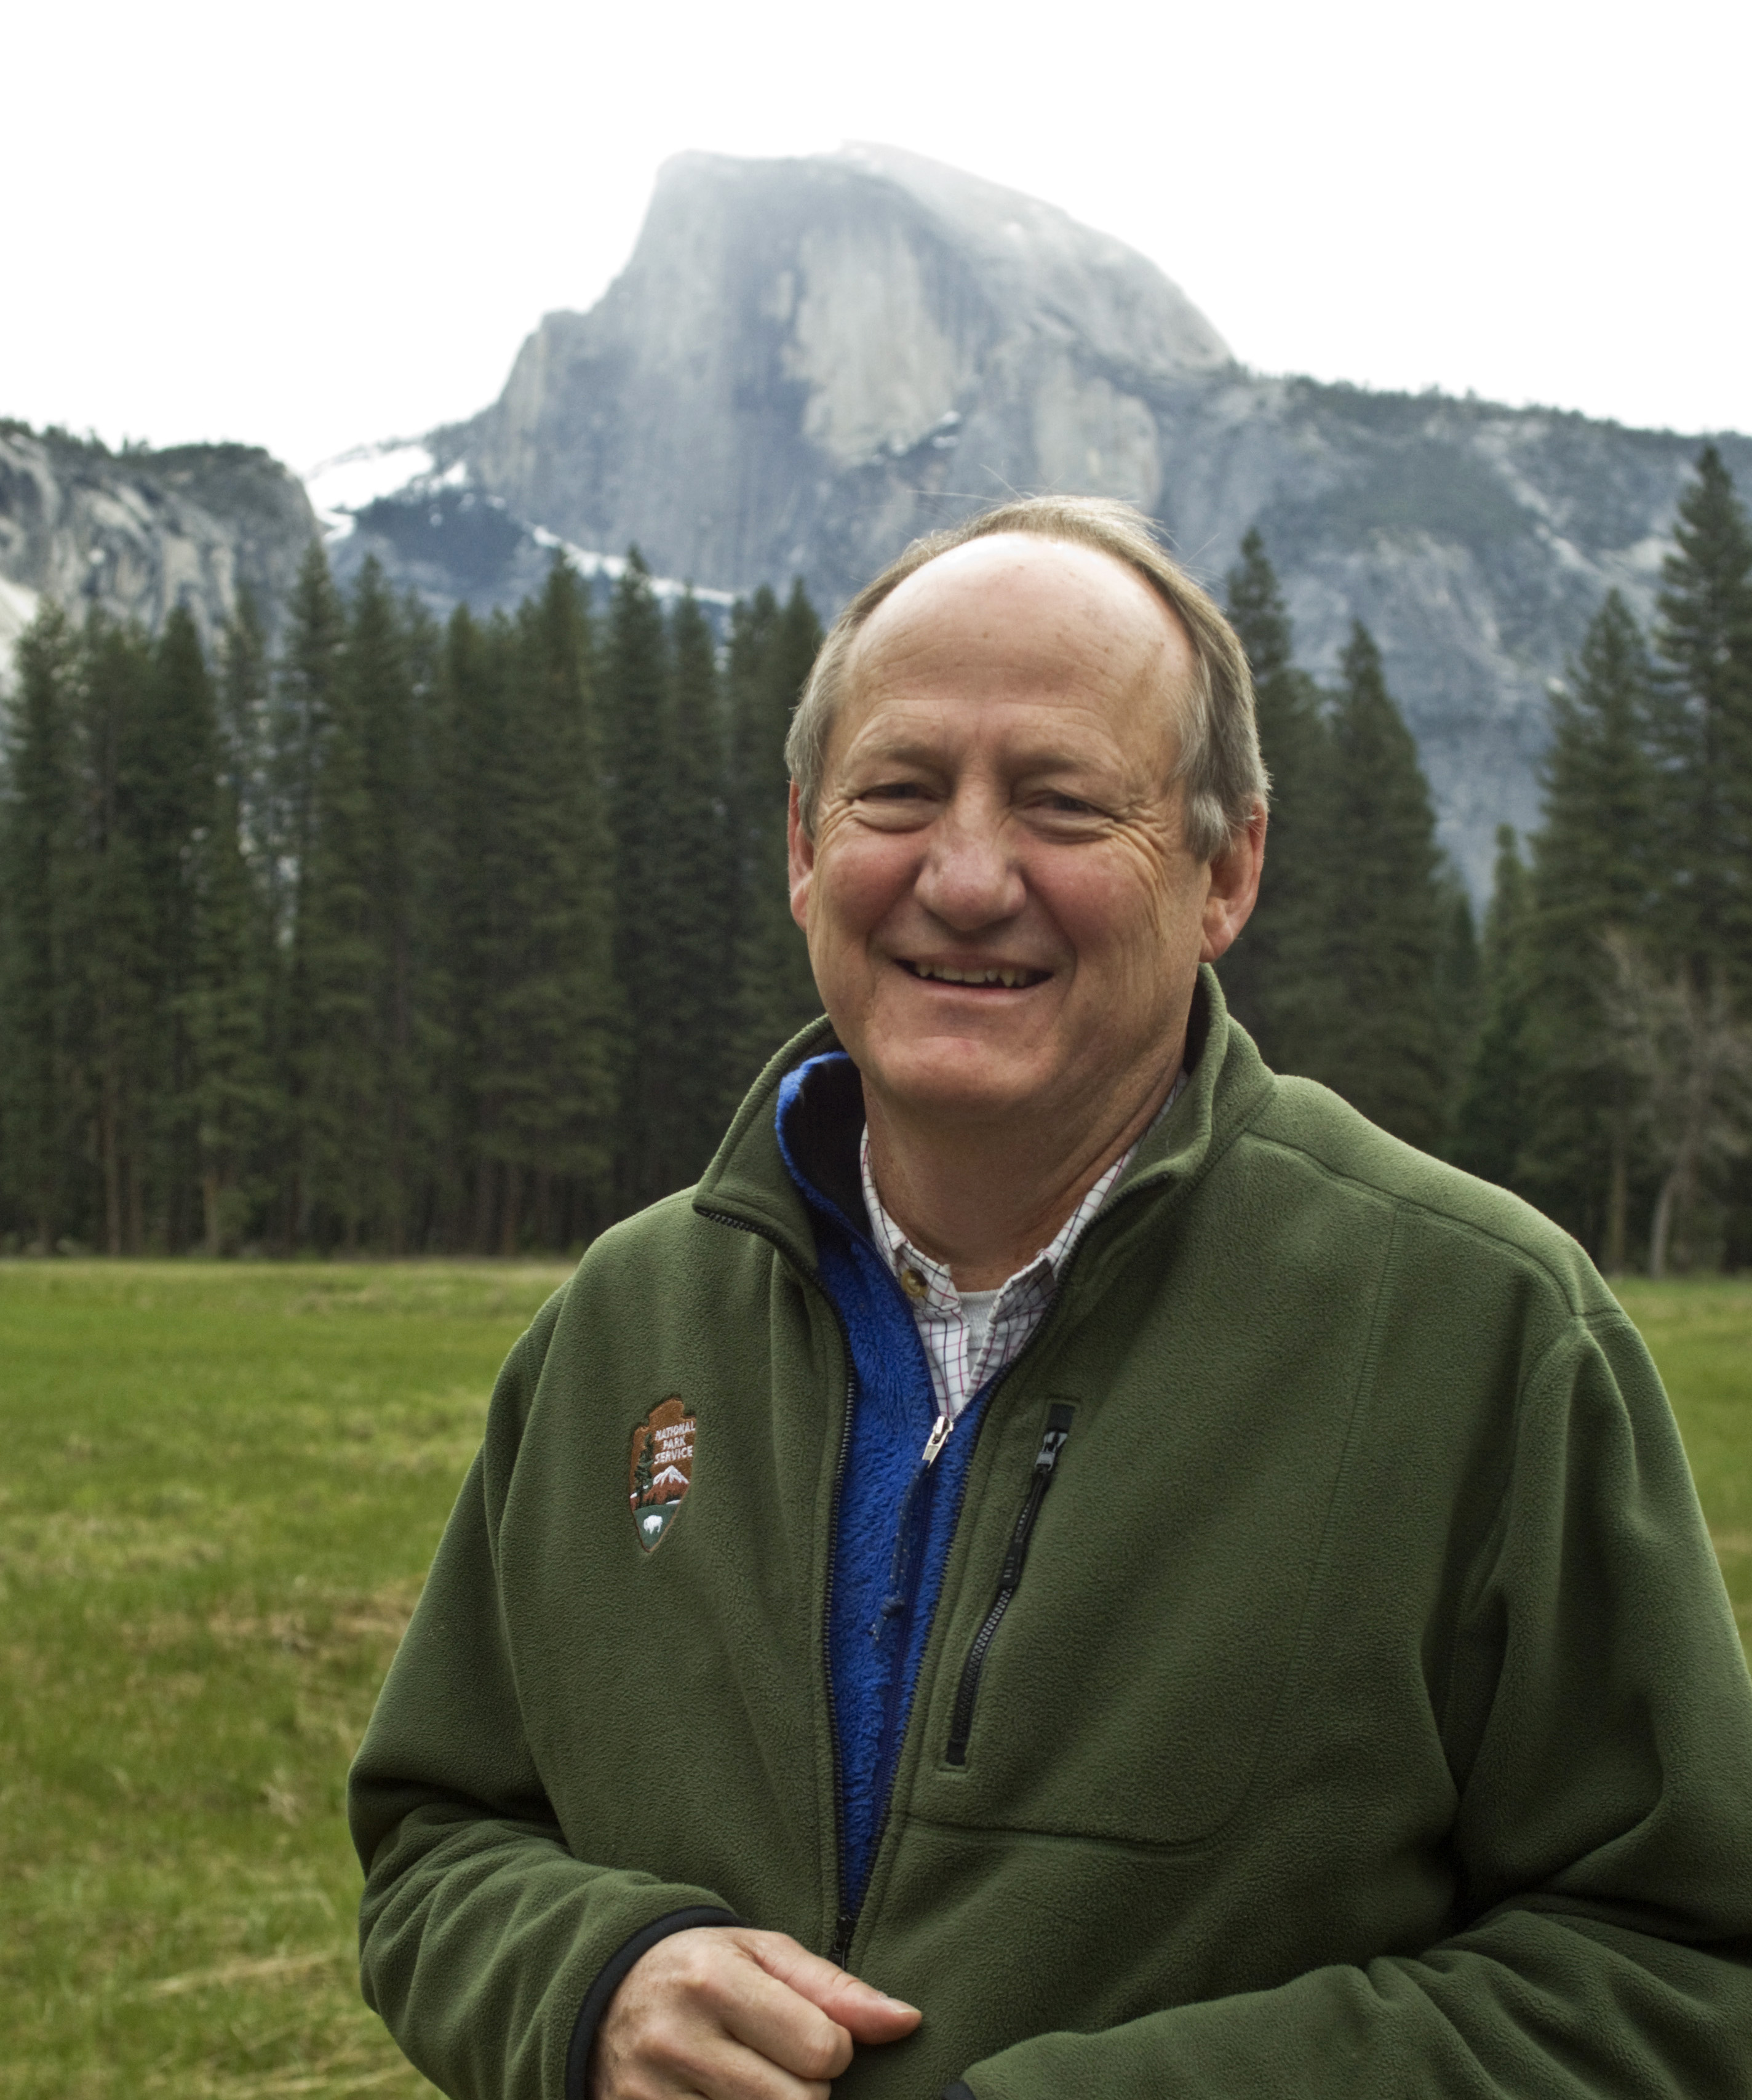 Dayton Duncan, Producer of The National Park's: America's Greatest Idea will be at the OKC Museum of Art Saturday, April 16 at 3pm